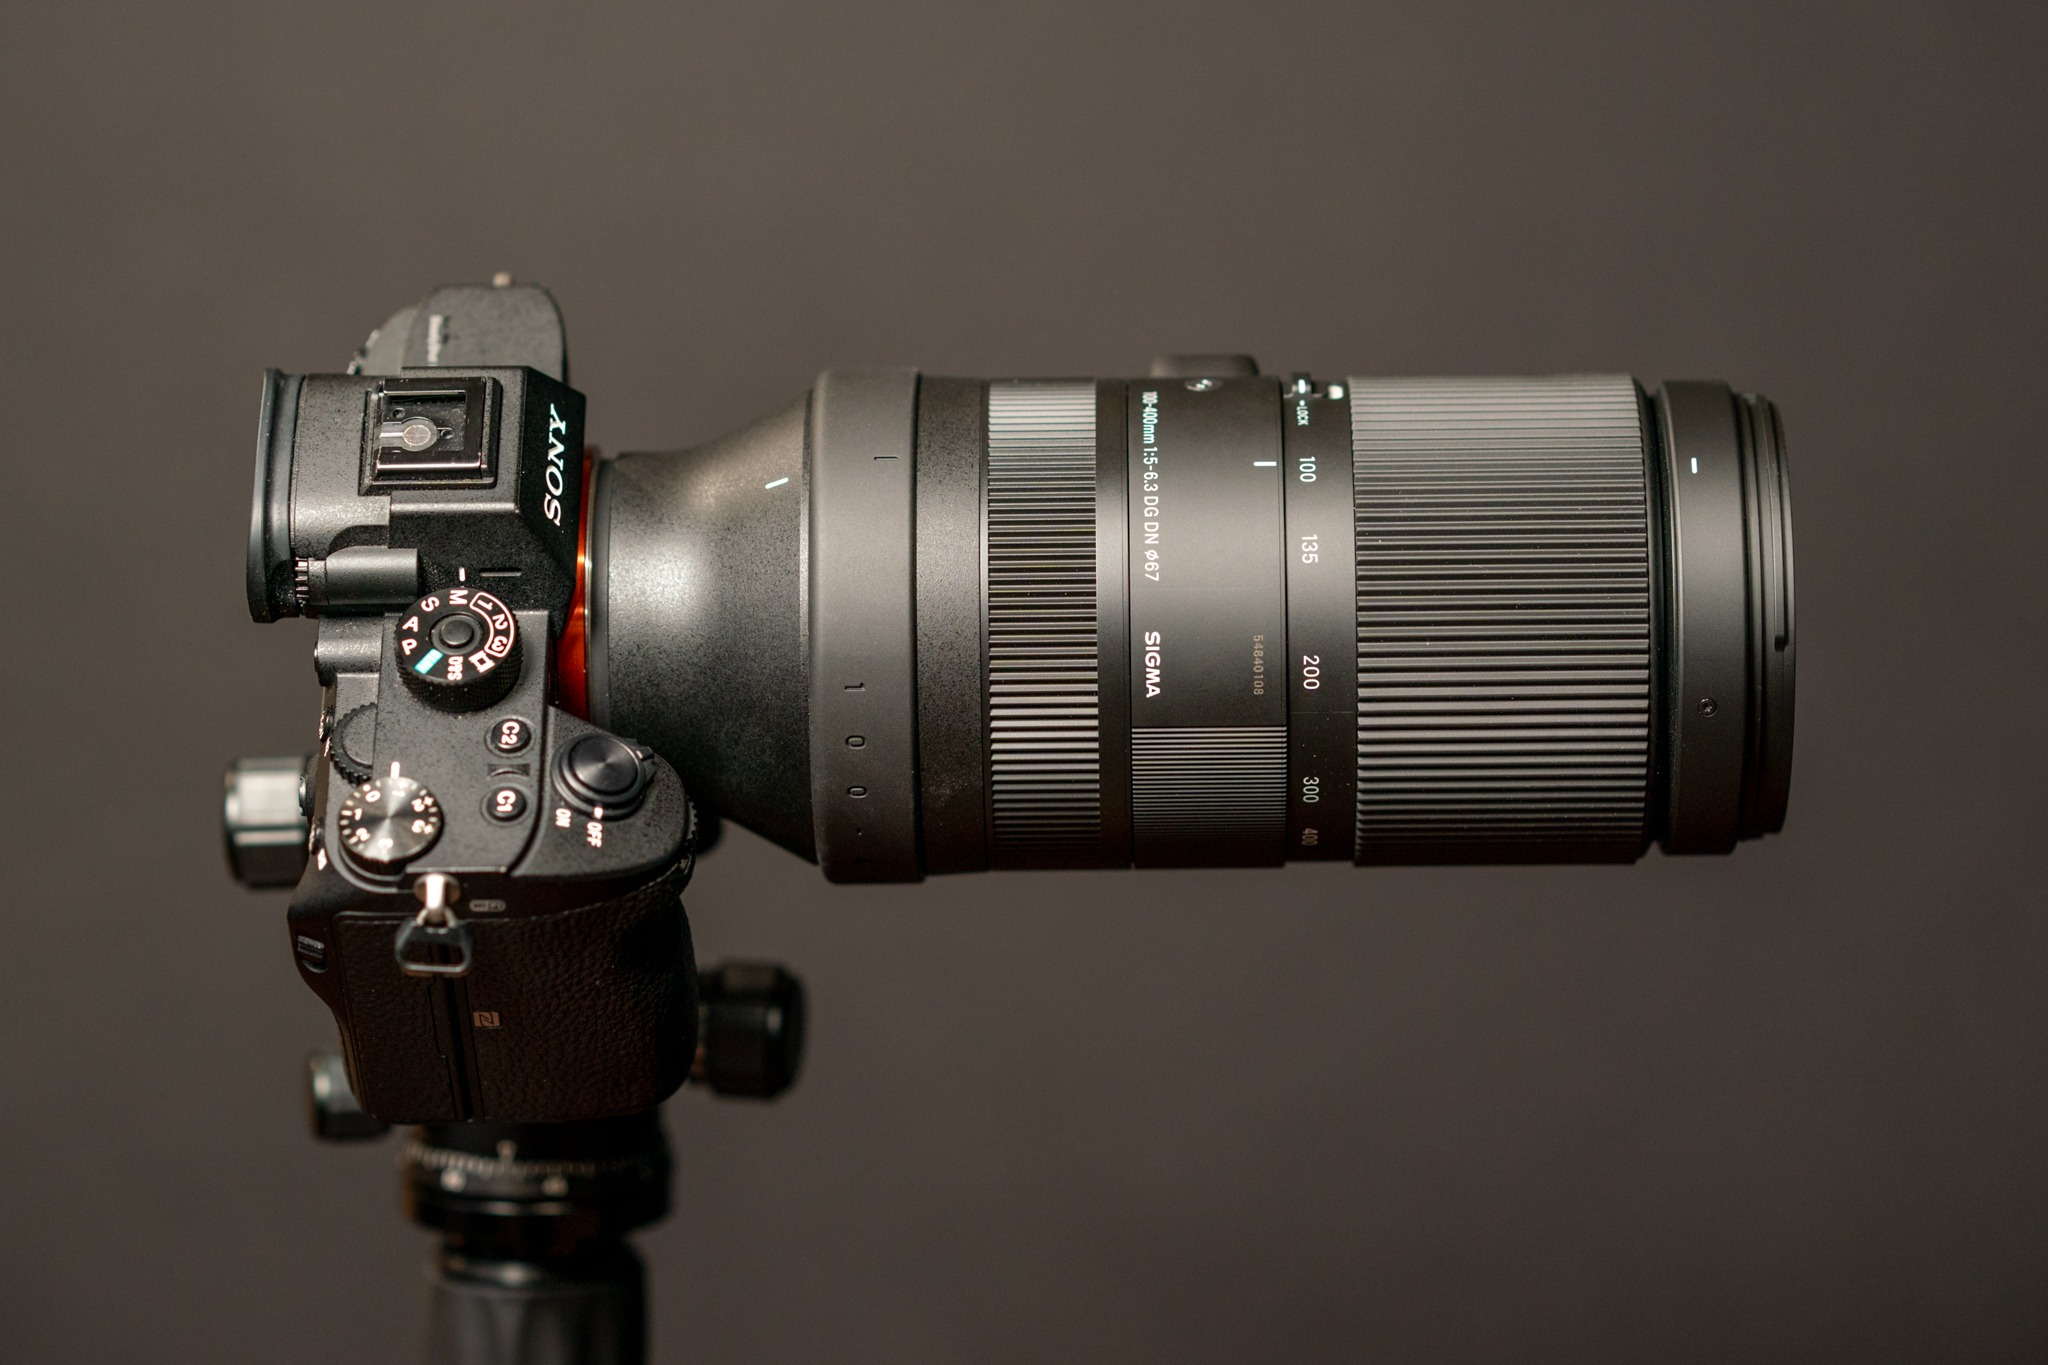 Sigma 100-400mm f/5-6.3 DG DN OS C for Sony E - A Budget Superzoom for Sony